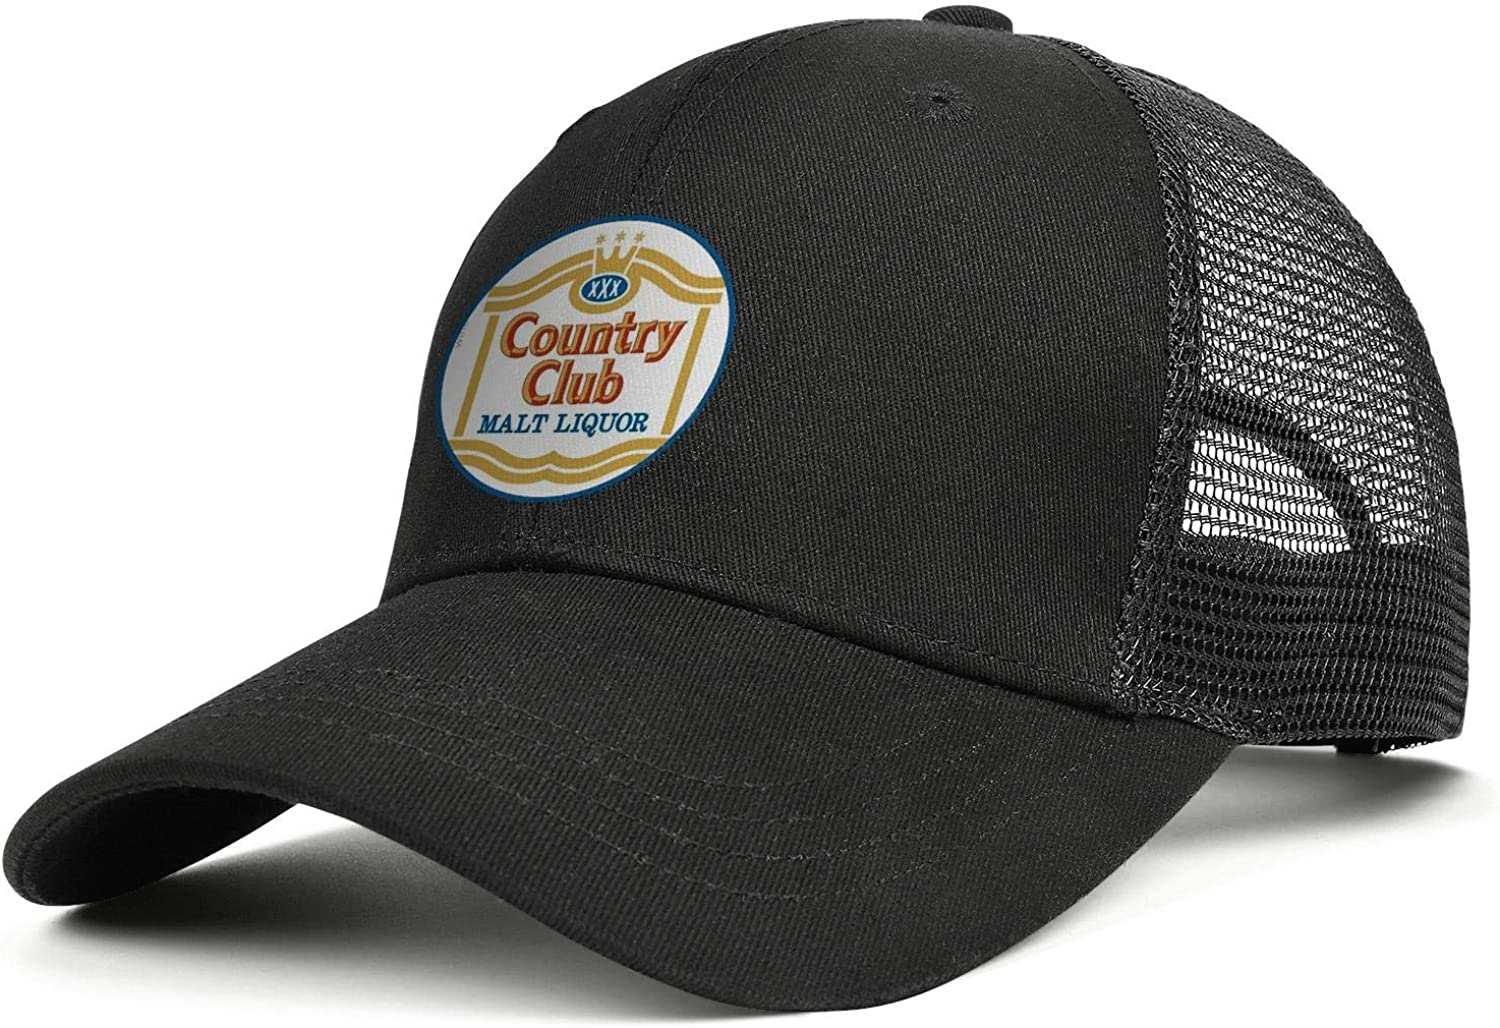 chenhou Unisex Country Club Malt Liquor Hat Adjustable Fitted Dad Baseball Cap Trucker Hat Cowboy Hat